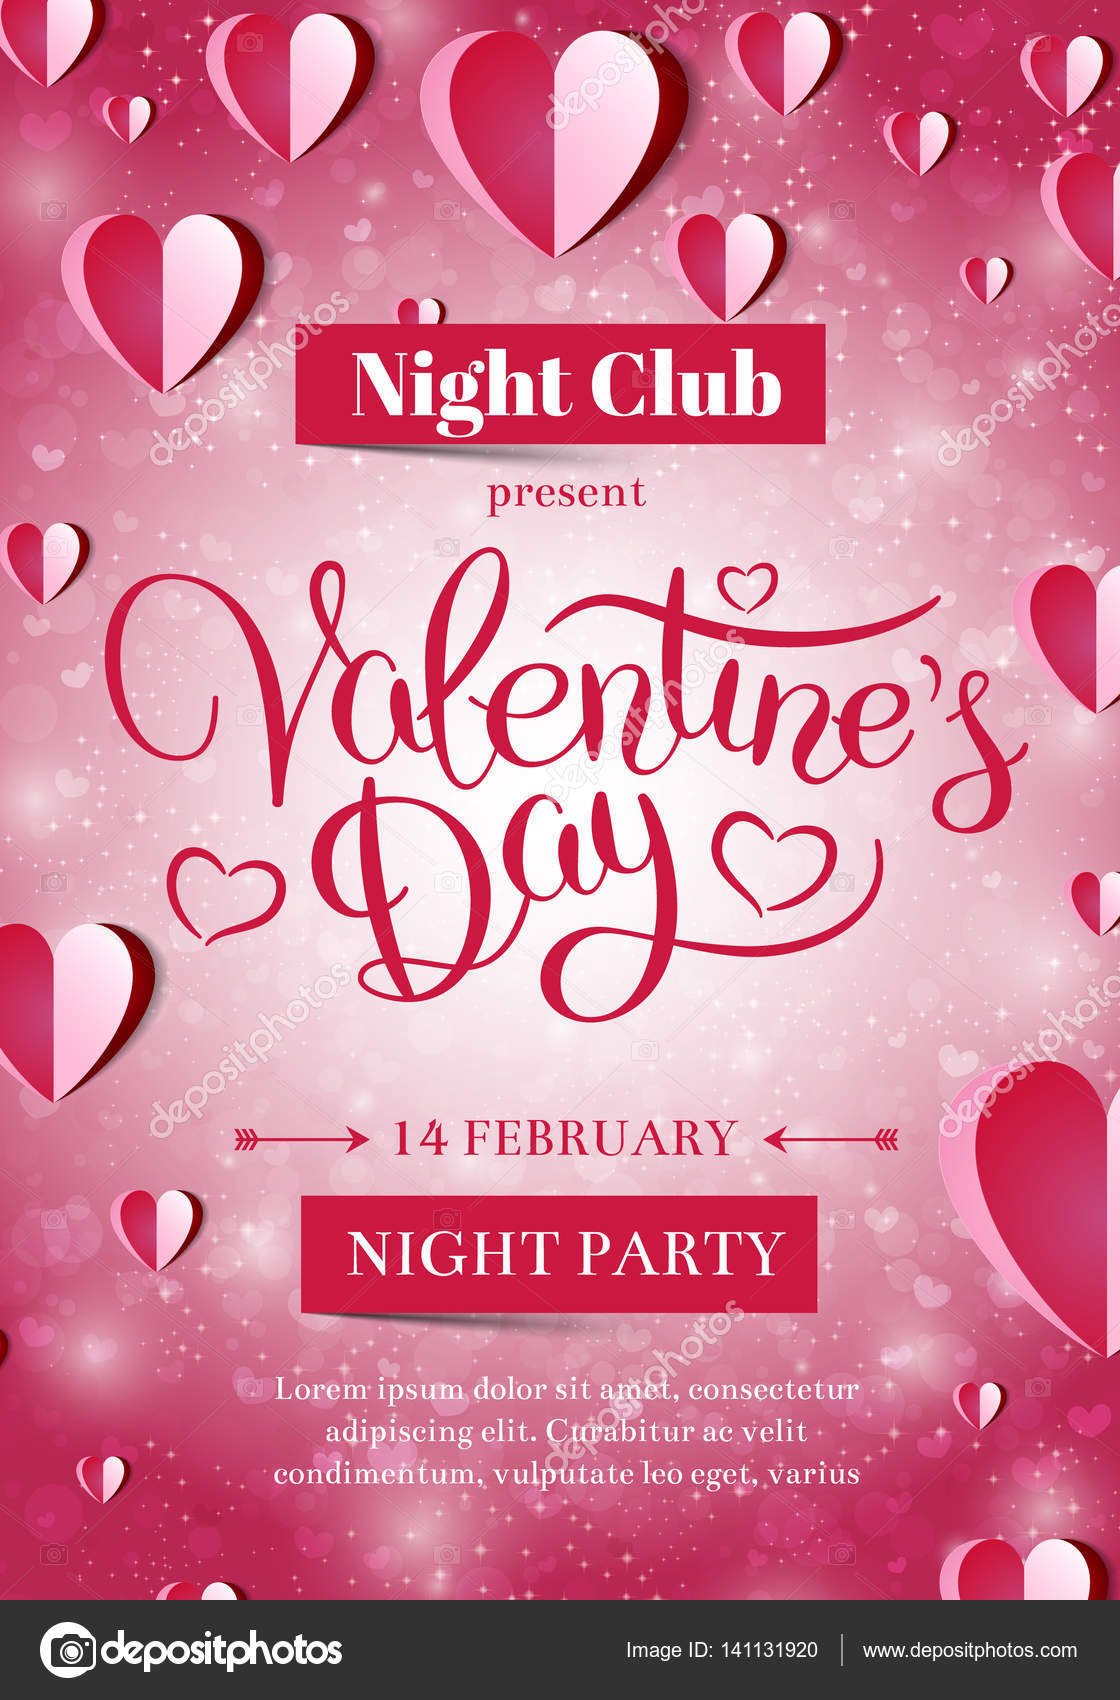 Valentines Day party flyer invitation — Stock Vector © d_arts #141131920